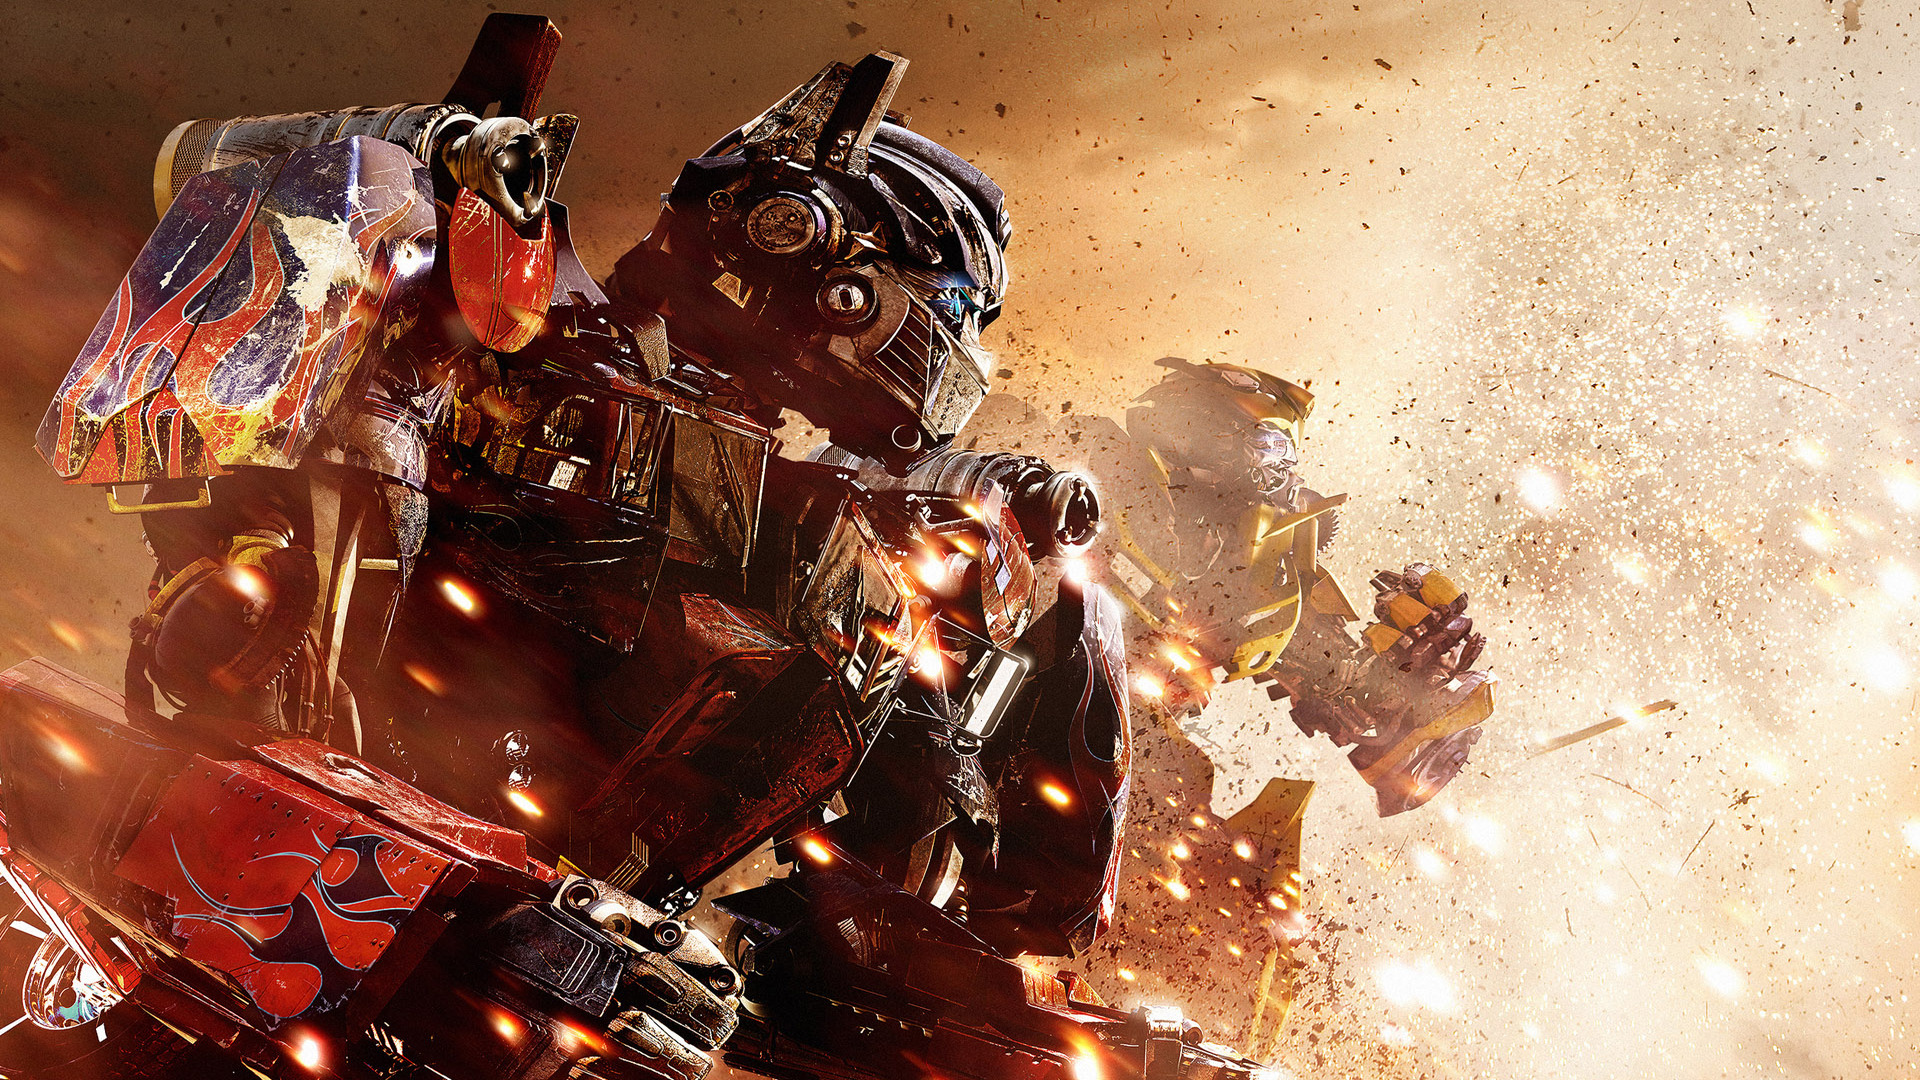 Optimus Bumblebee in Transformers 3 1754.98 Kb